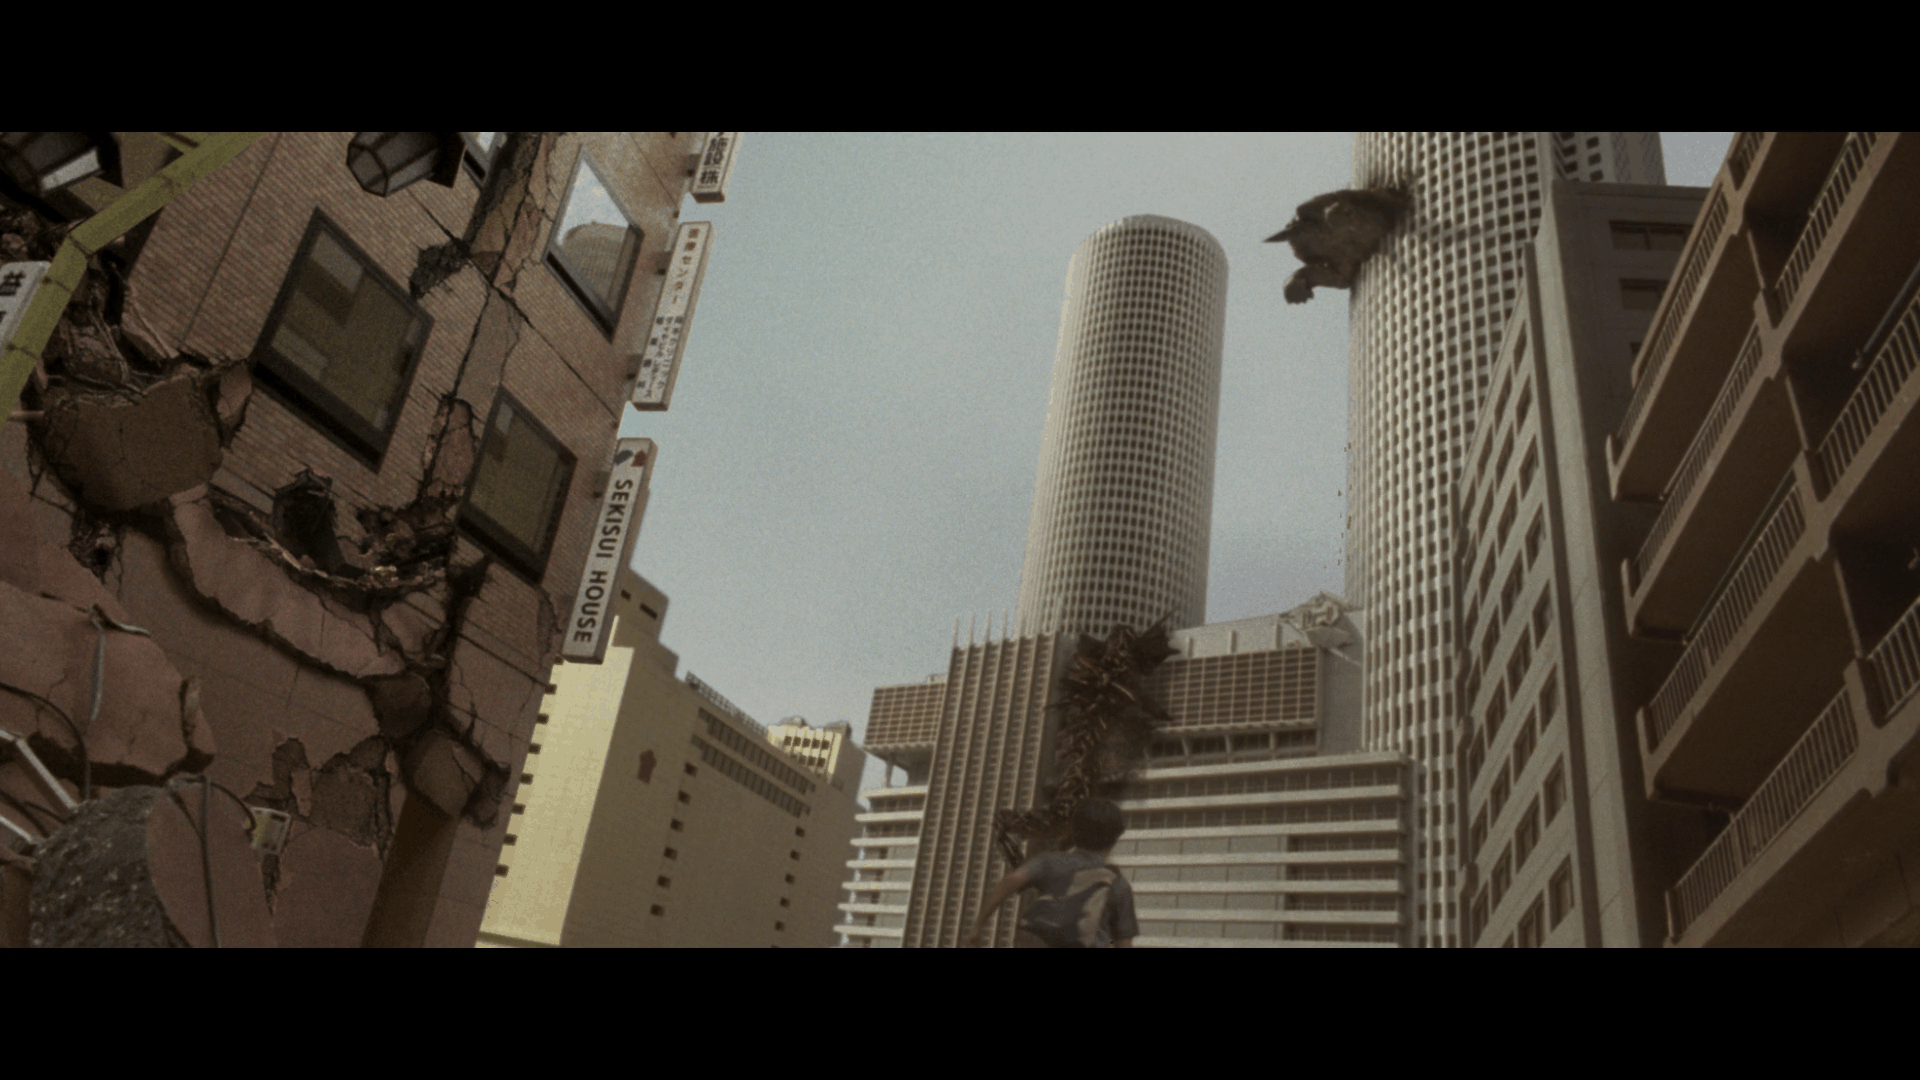 Gamera the Brave [Arrow Video Blu-ray review] 4